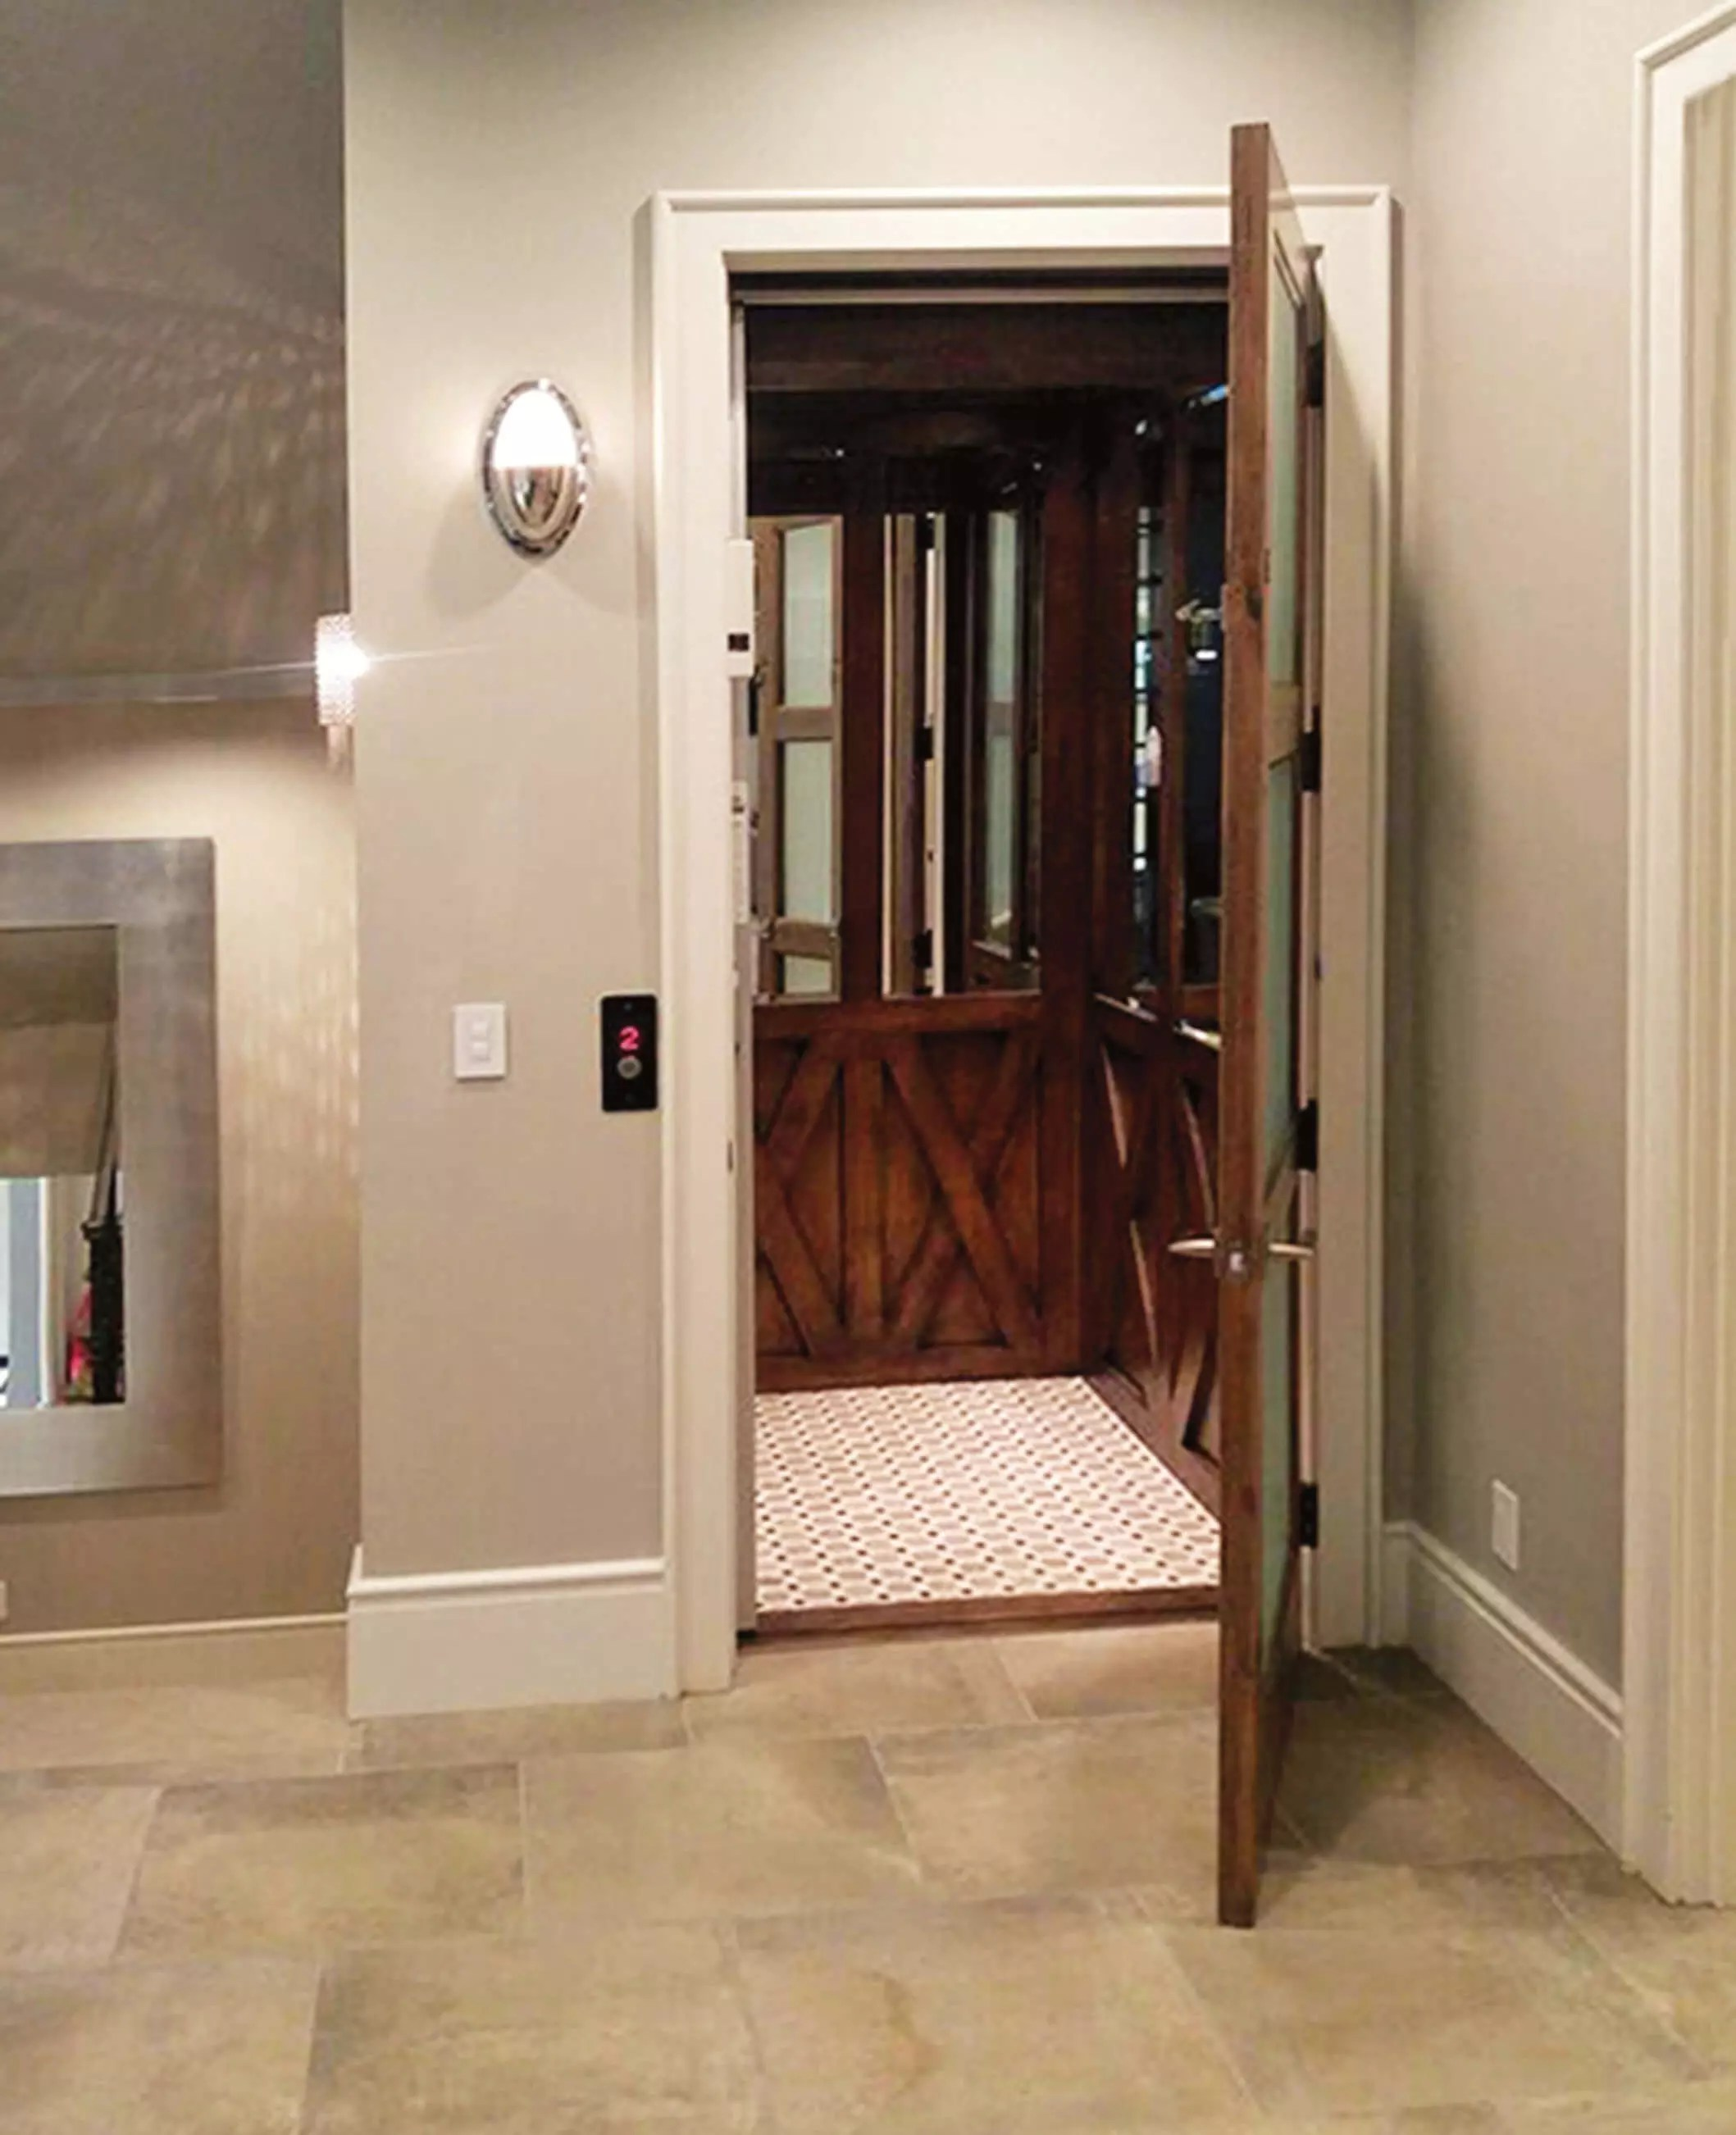 Residential Elevator Cost Home Elevator Cost: What To Consider By Symmetry Elevating